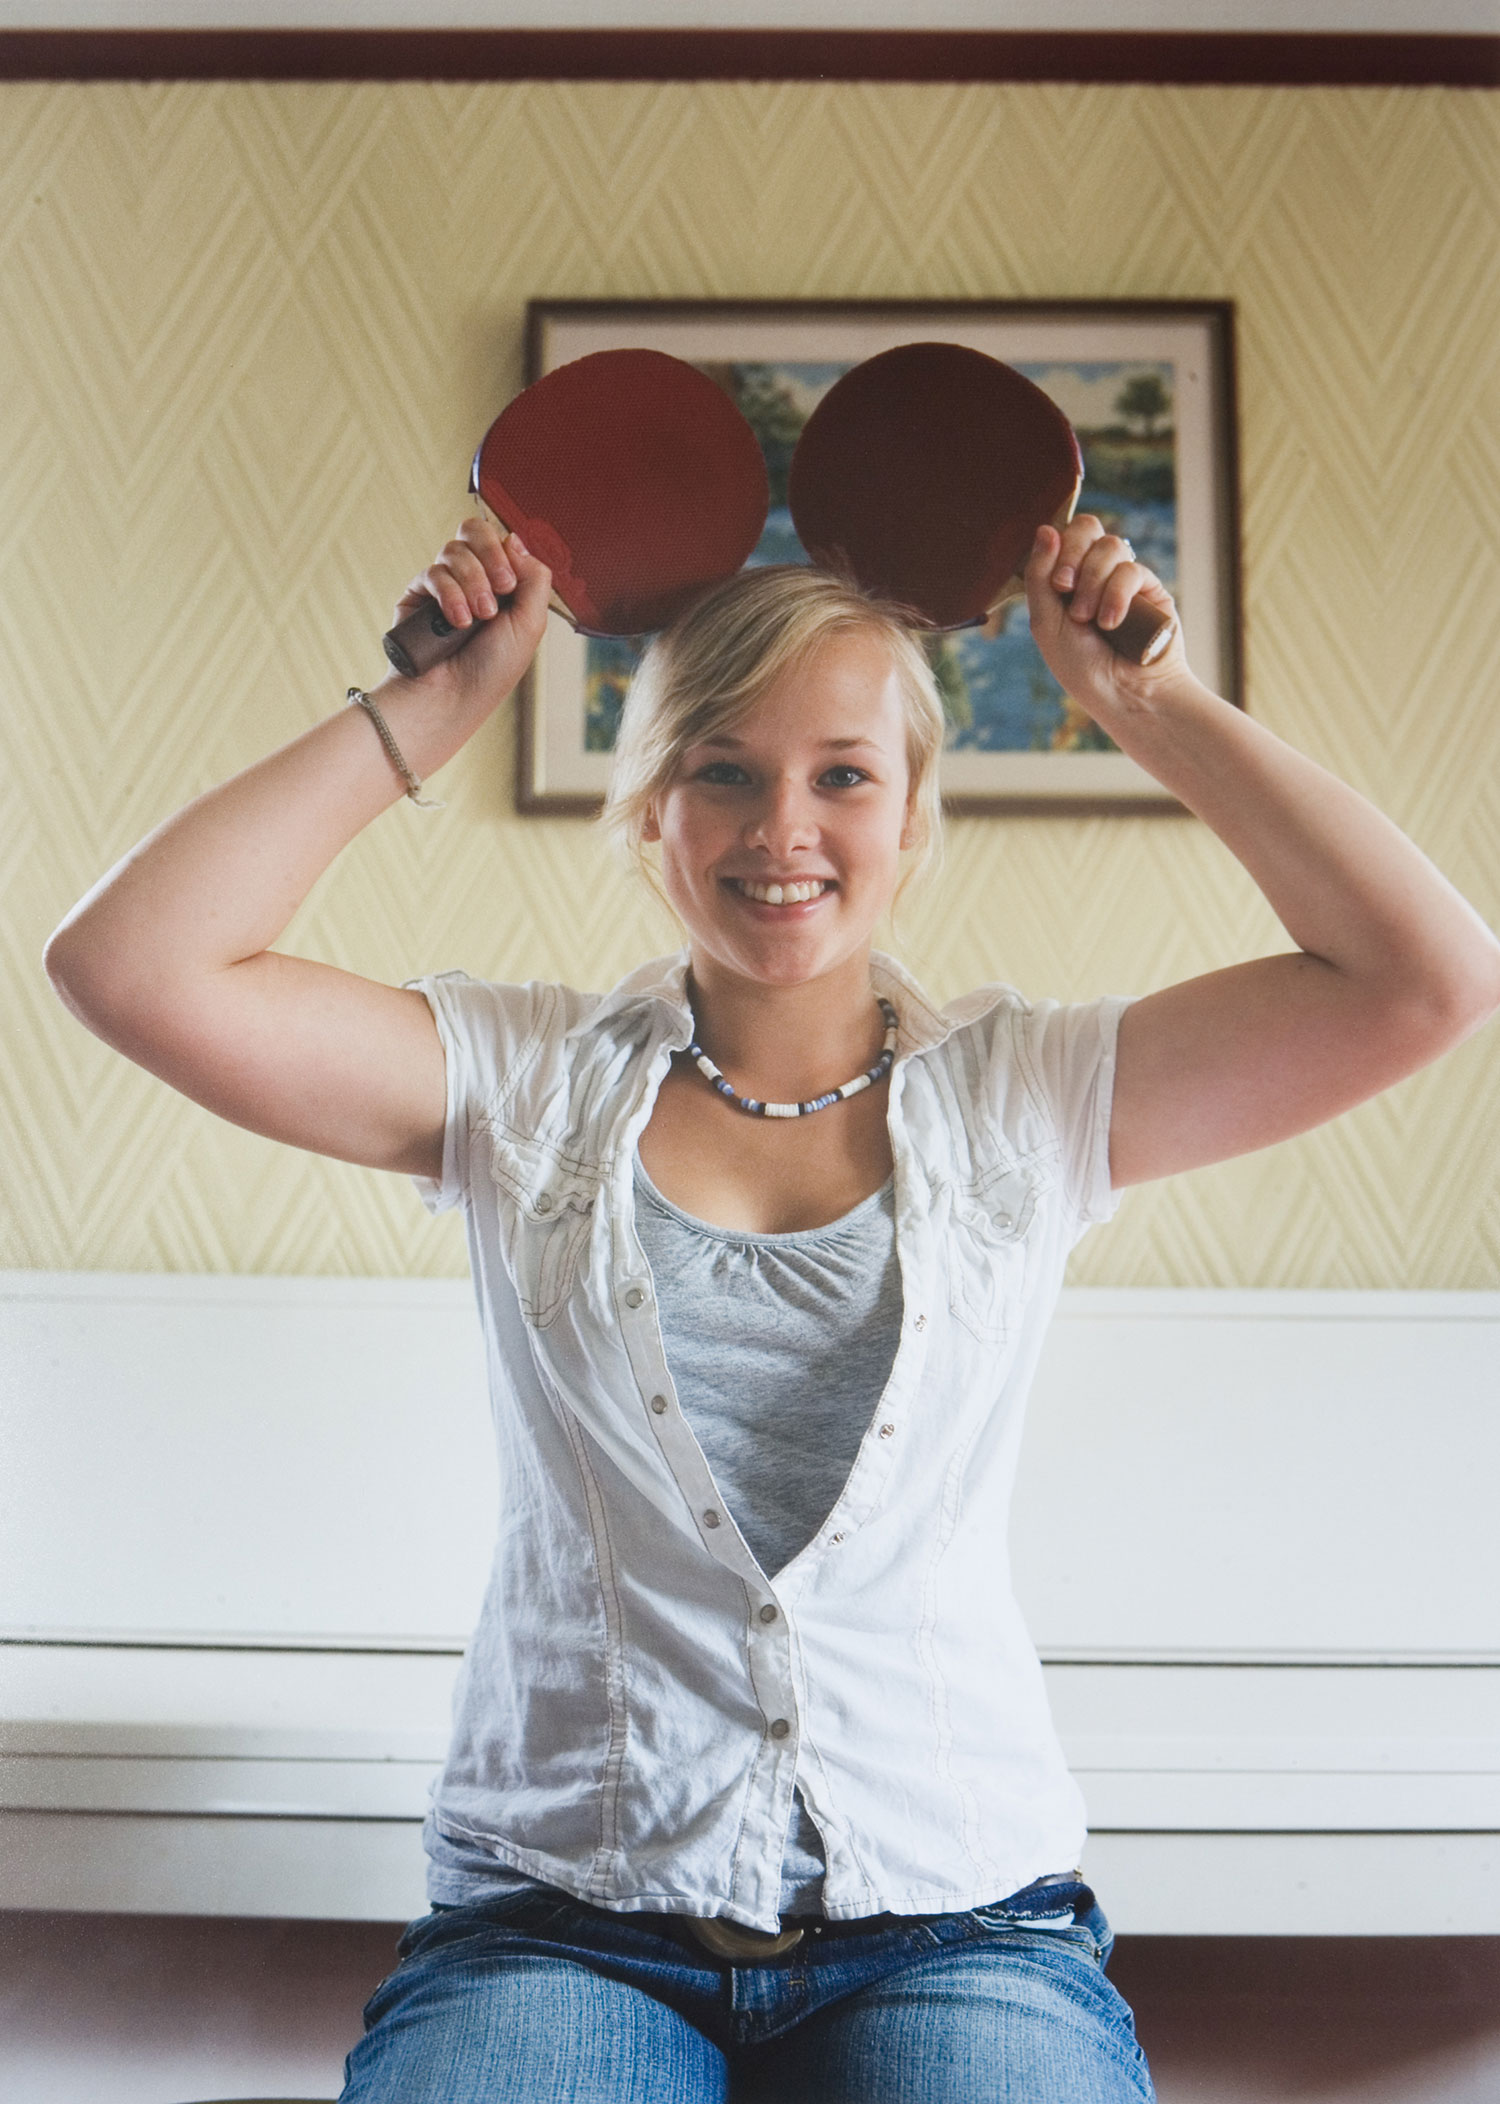 Table-Tennis-Hannah.jpg